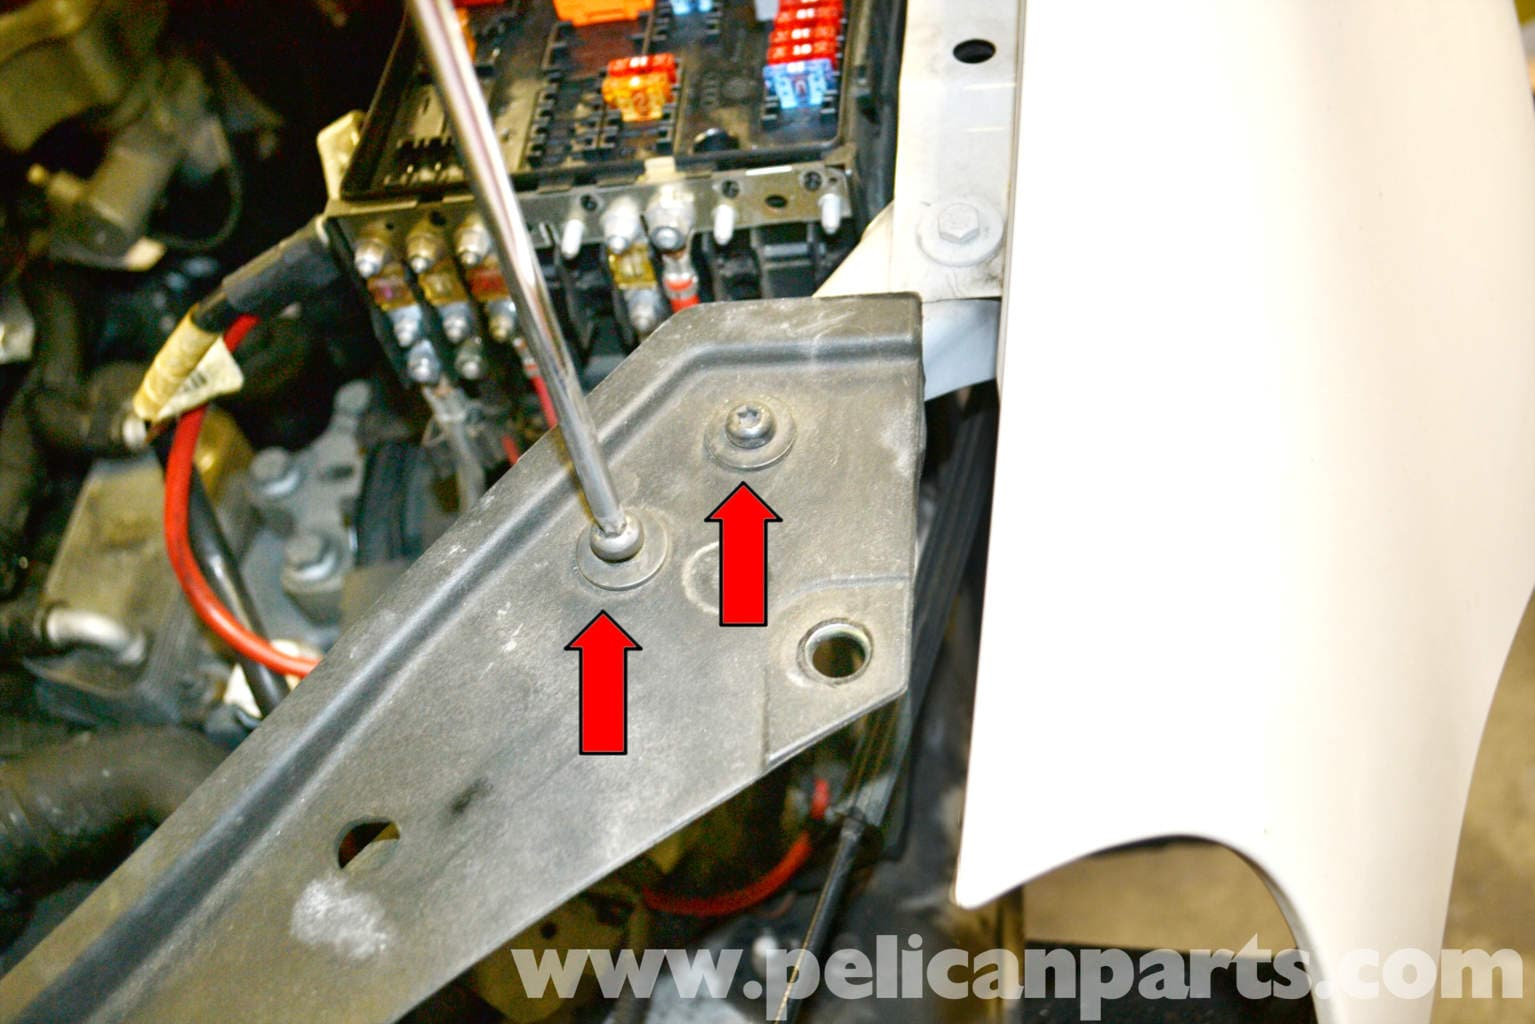 You Need Bcm Pin Out Diagram For 2006 Dodge Grand Caravan Sxt